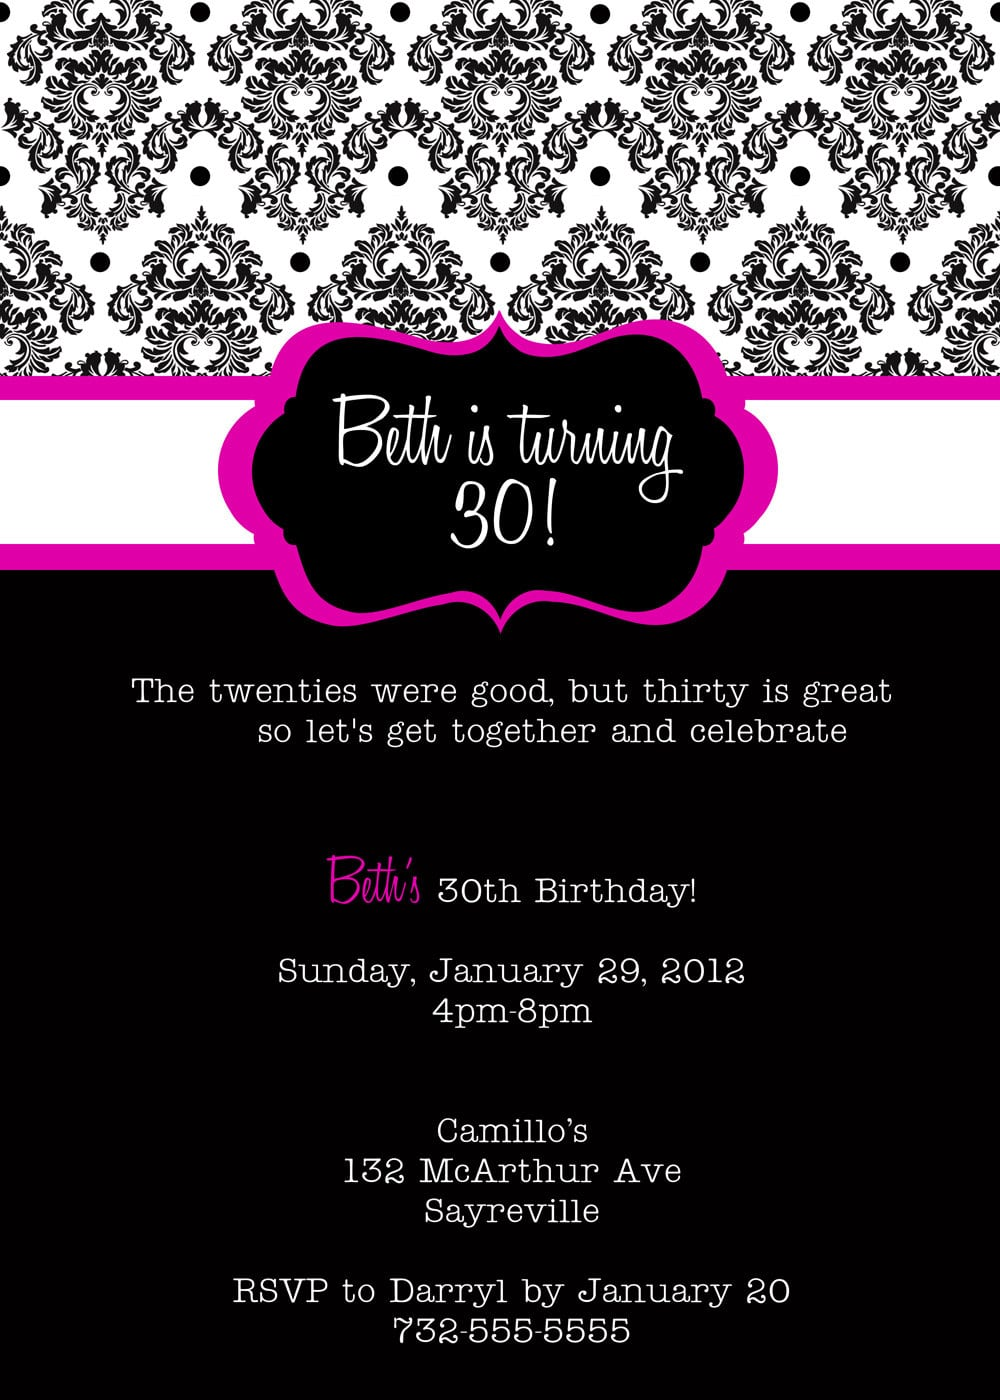 18th Birthday Party Invitation Free Weddings Invitations – Free 18th Birthday Invitation Templates